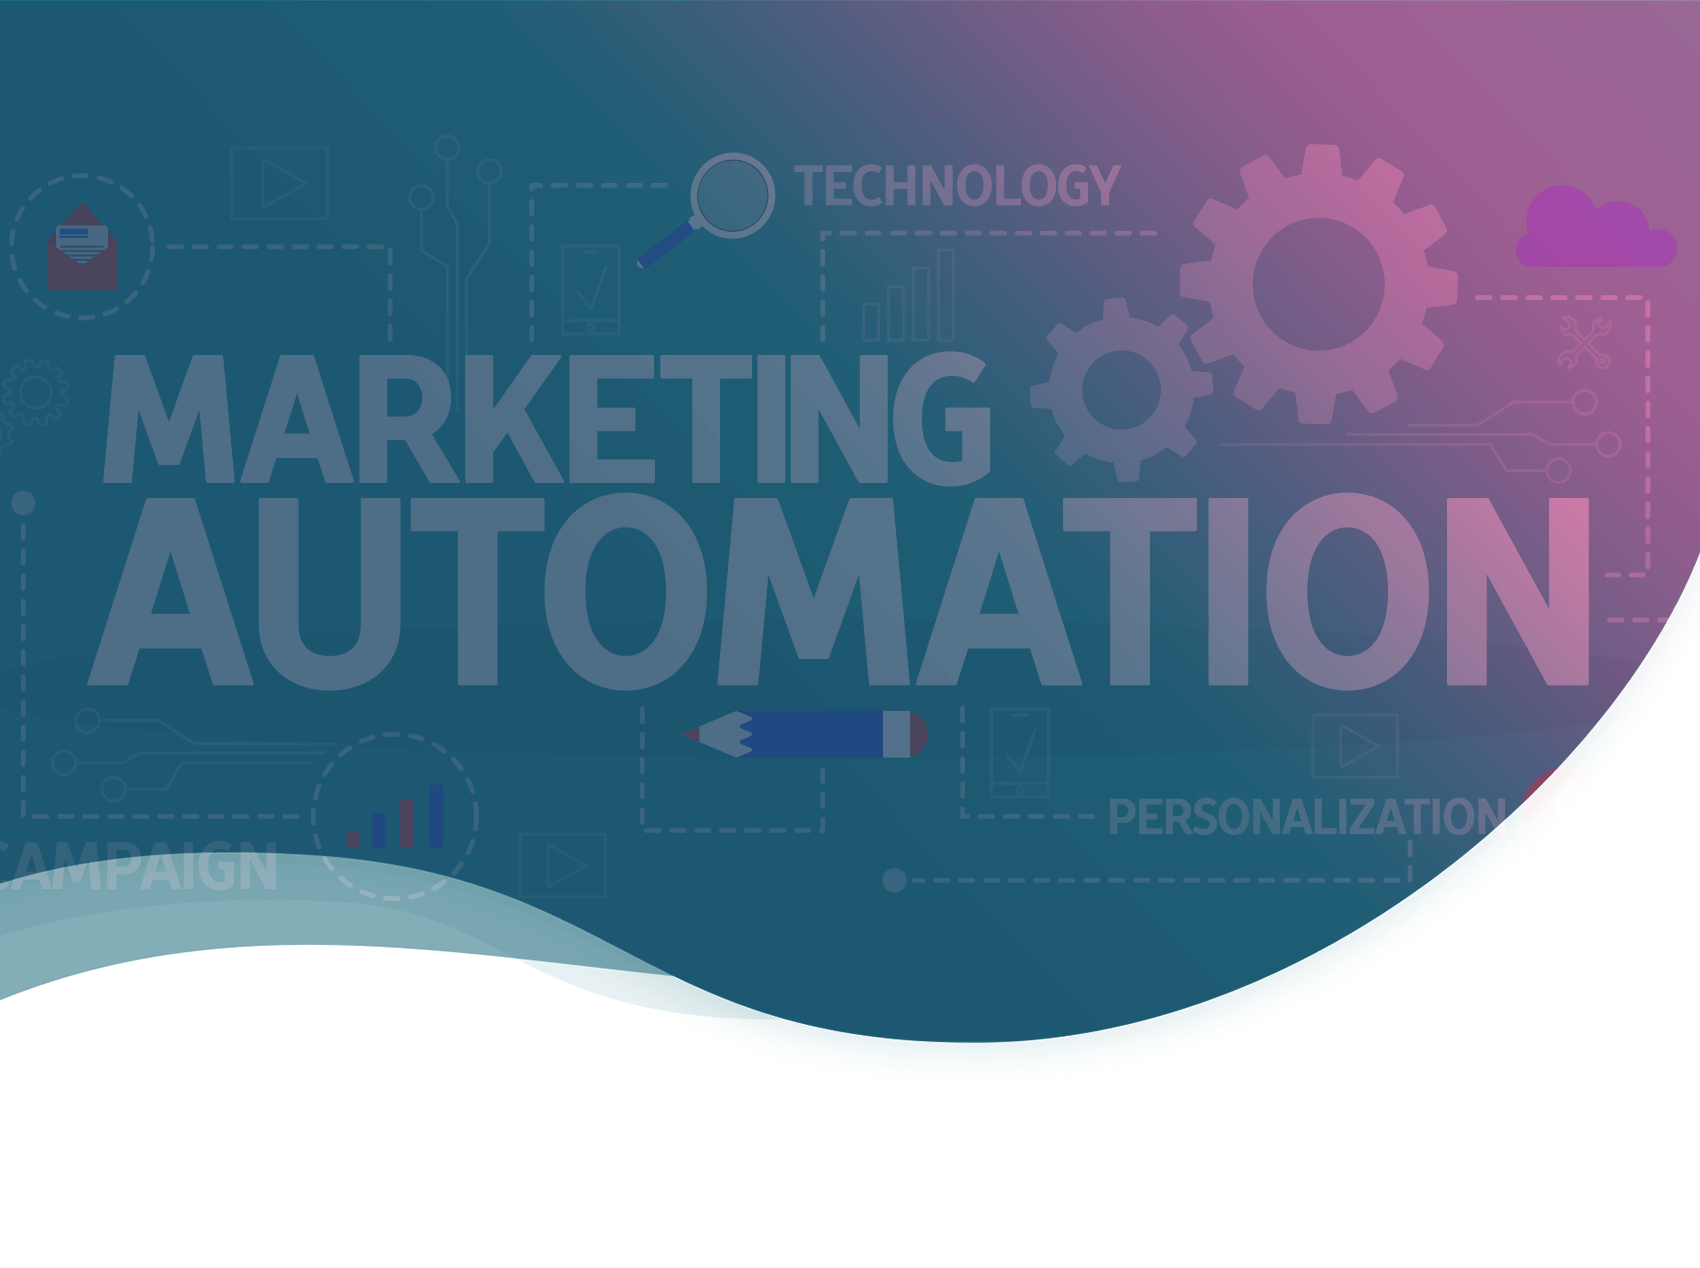 Marketing automation: what it is, how it works, what it can do for you